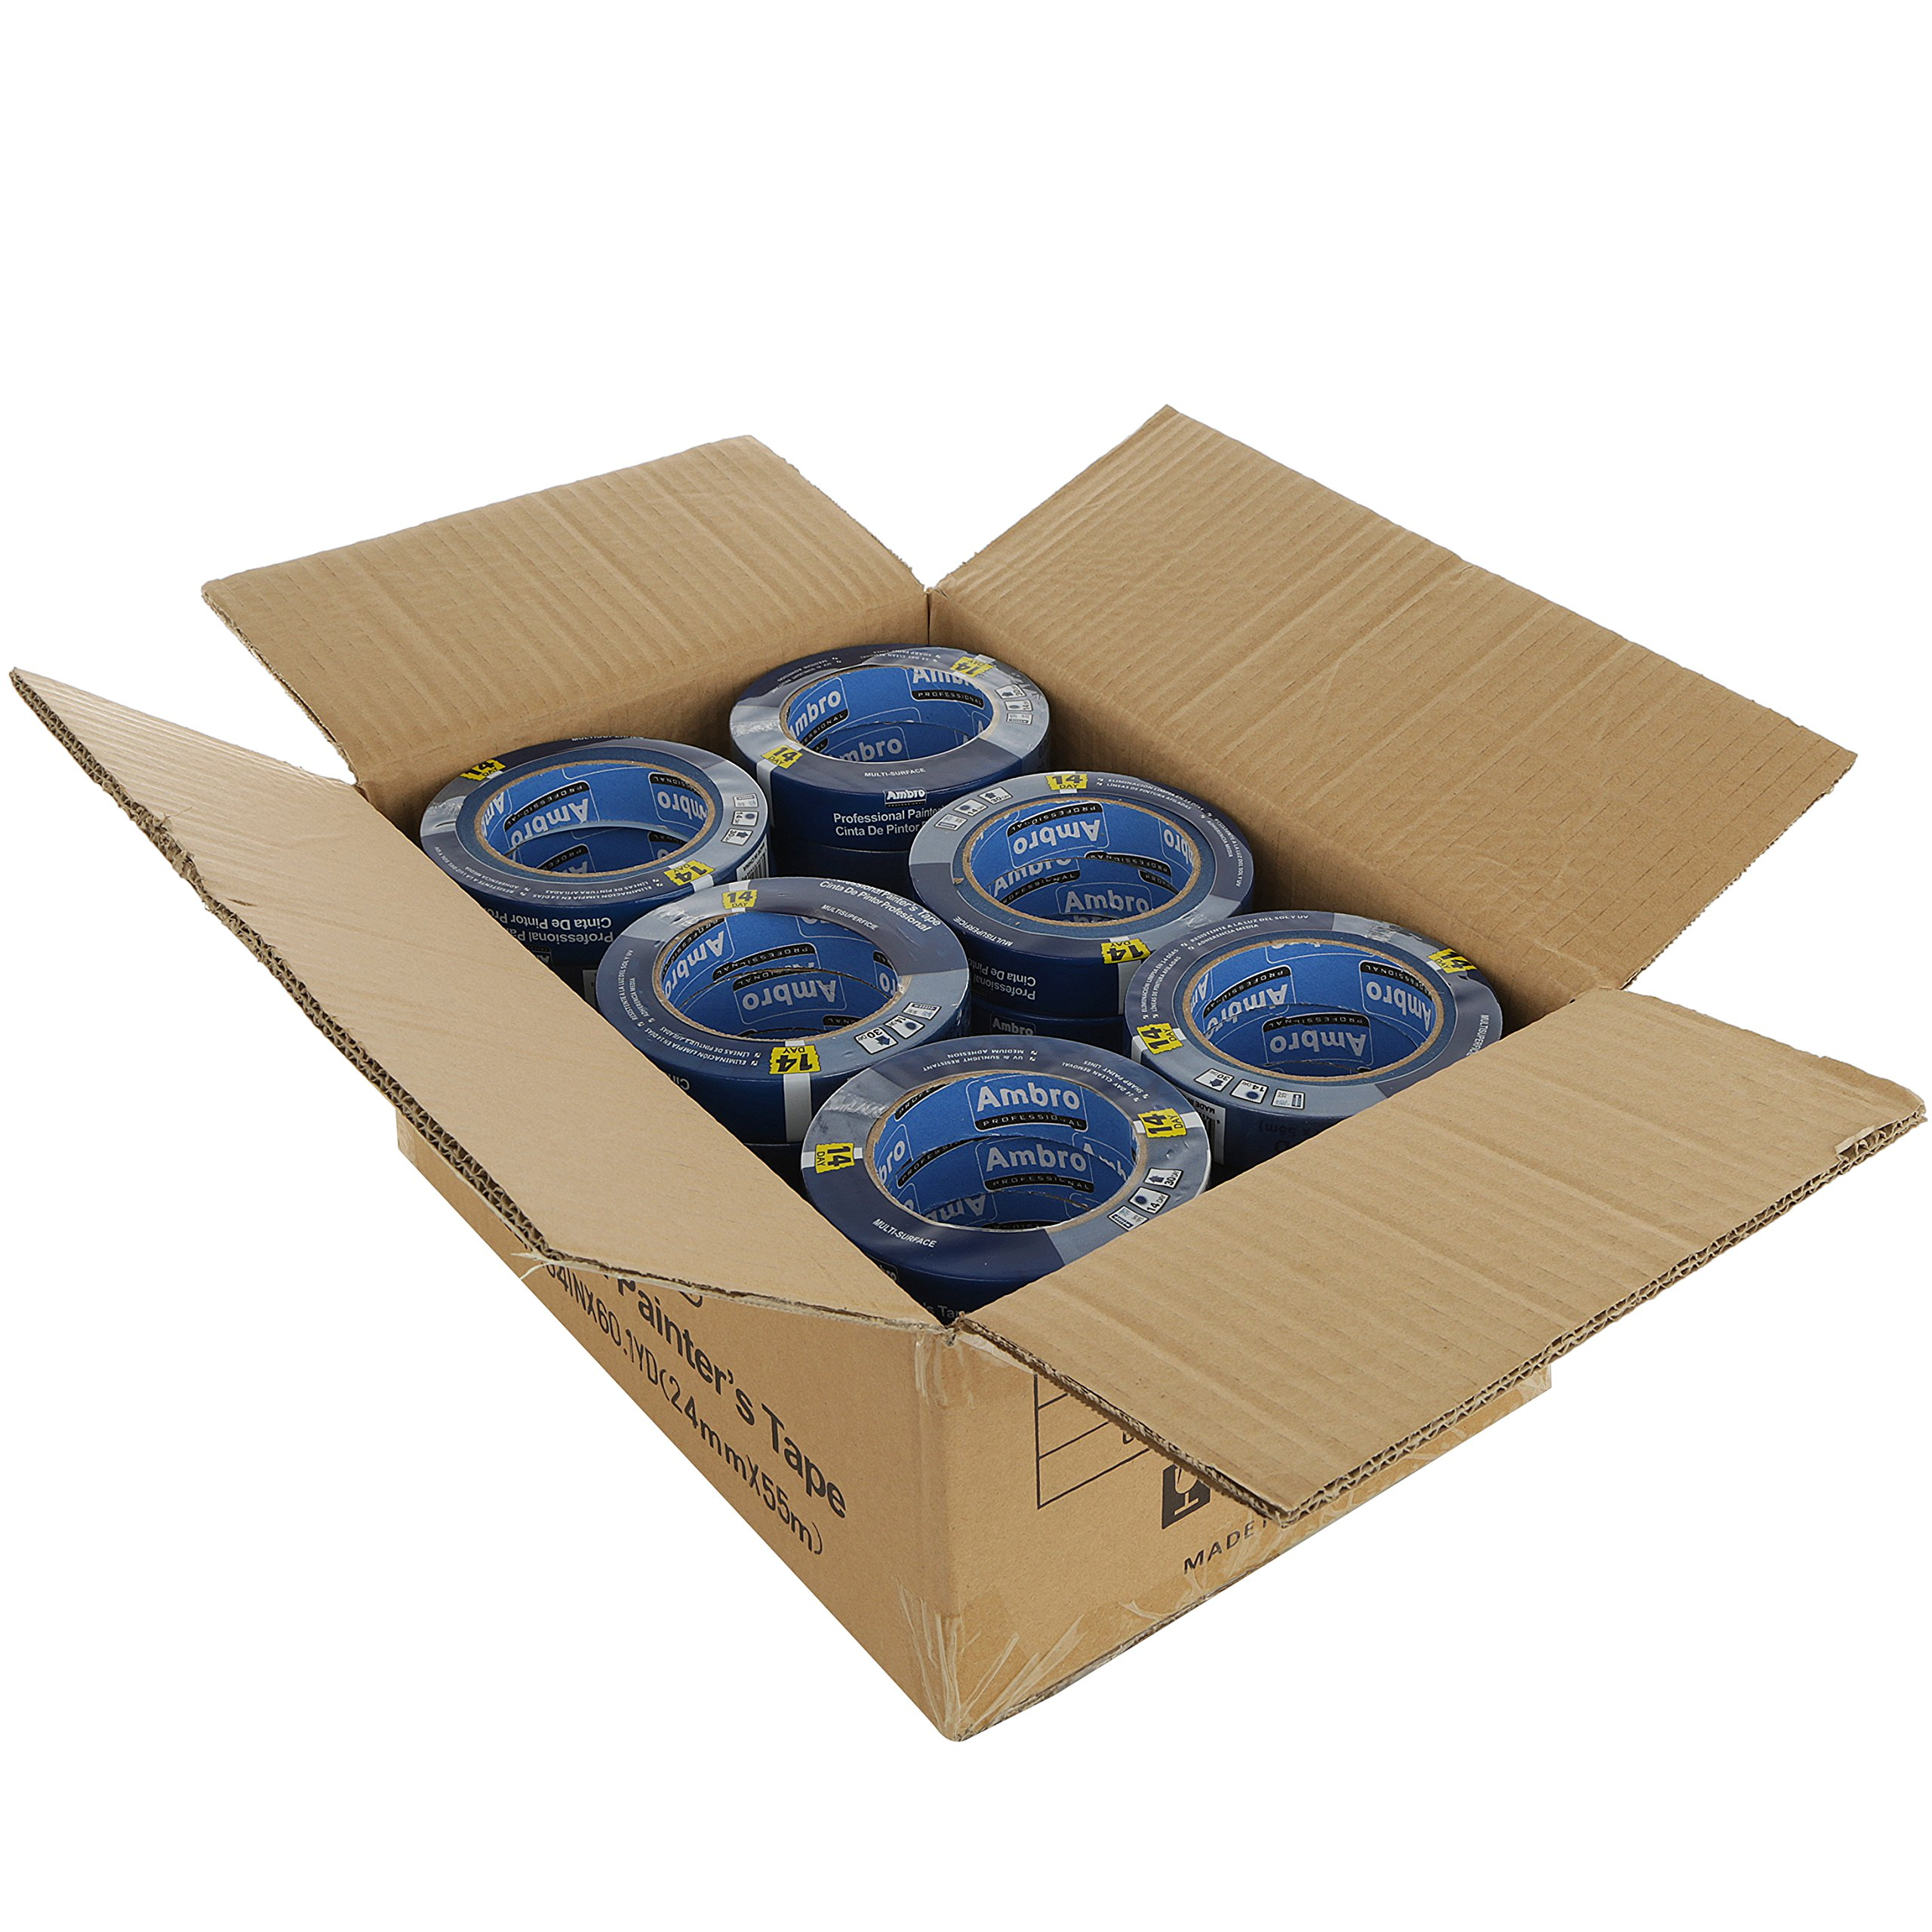 Ambro Professional Painters Tape Multi Surface Use (Blue) (CASE:24 pack, 2 inches x 60 yds)